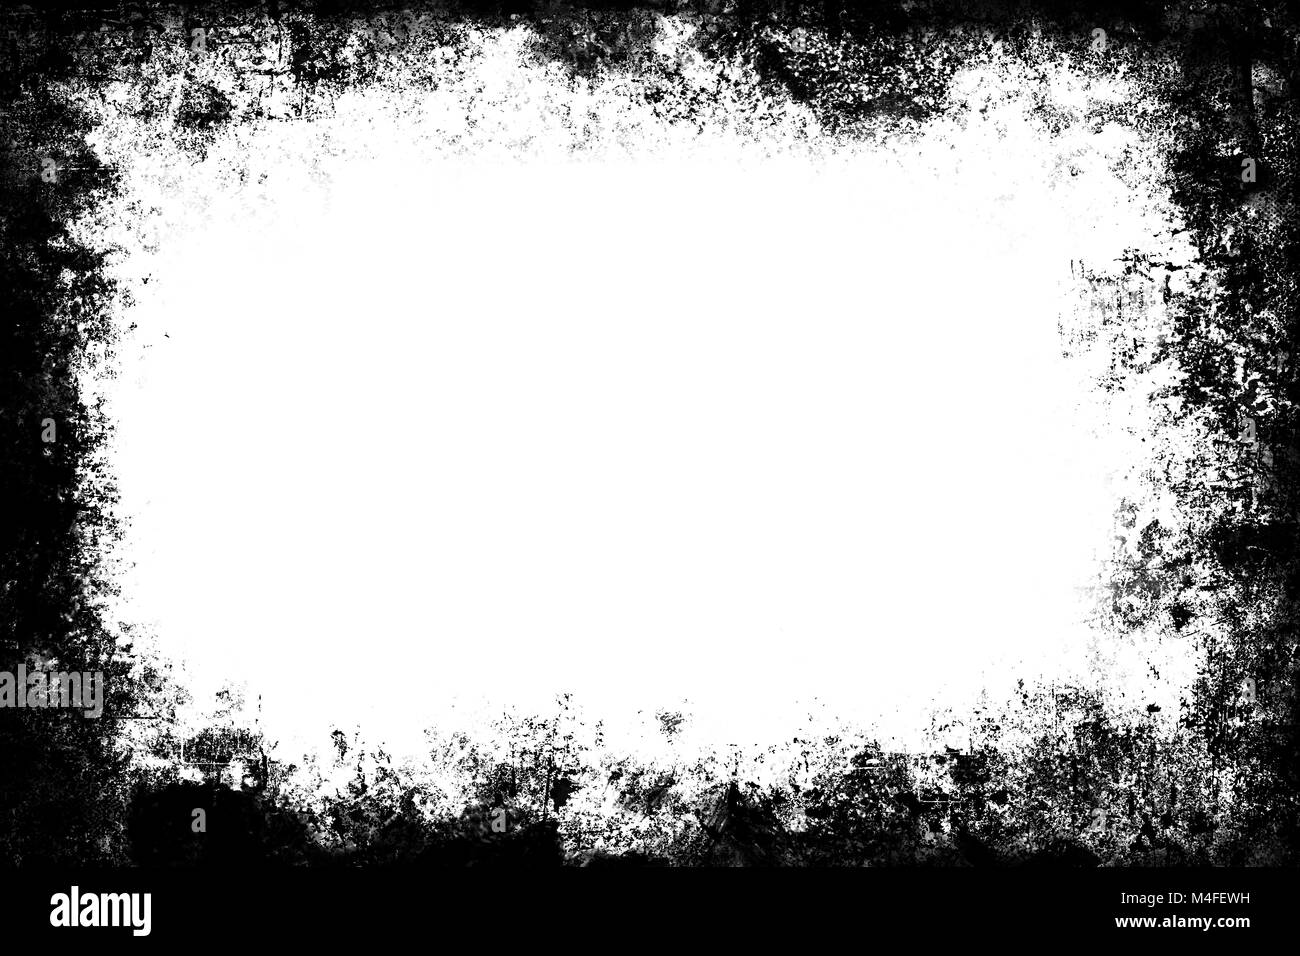 Black grunge texture distressed border frame over white space Stock ...